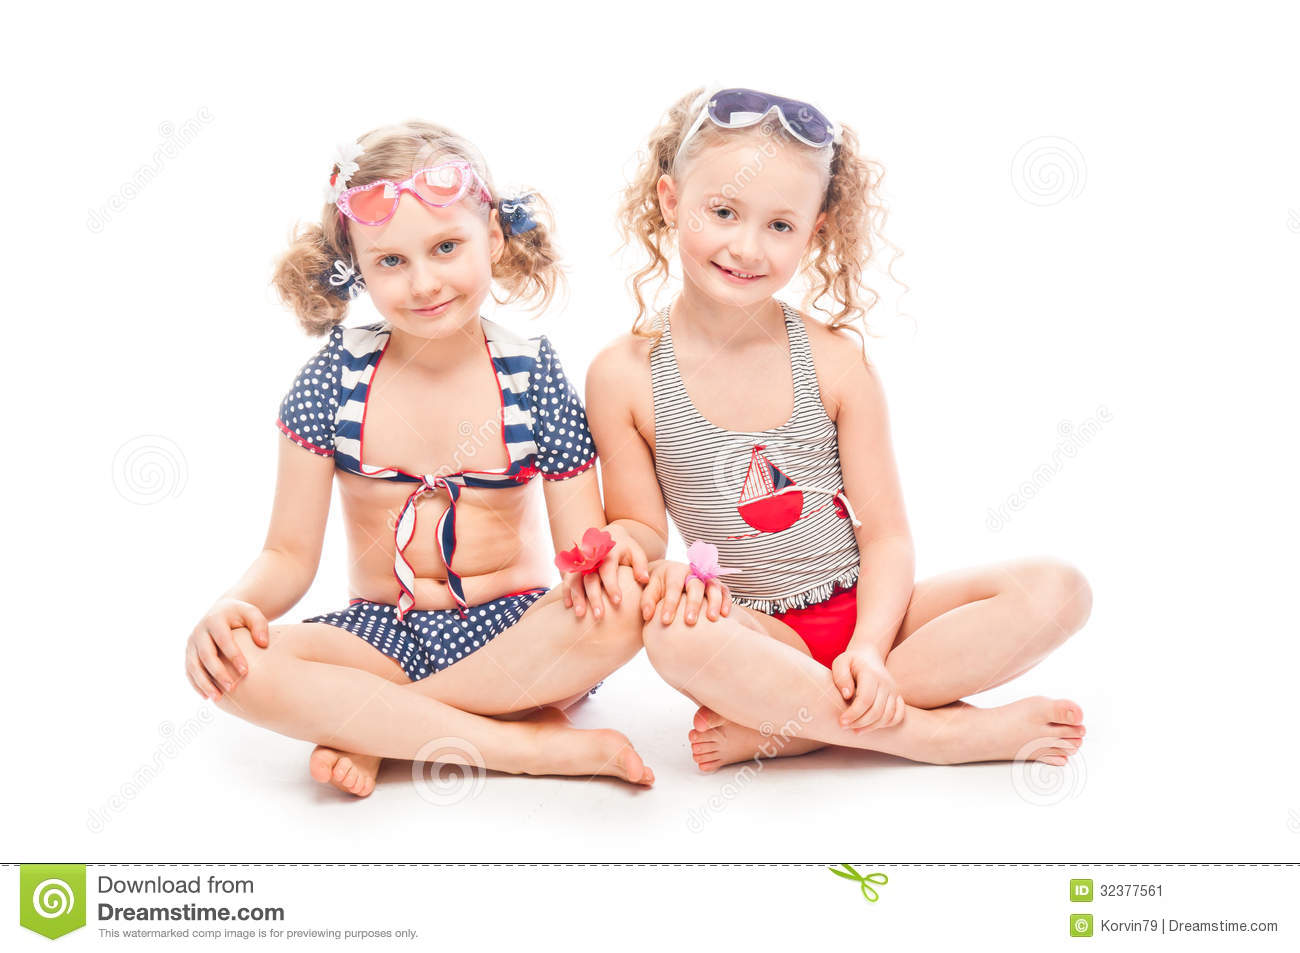 Two Girls In Bathing Suits Stock Image - Image: 32377561